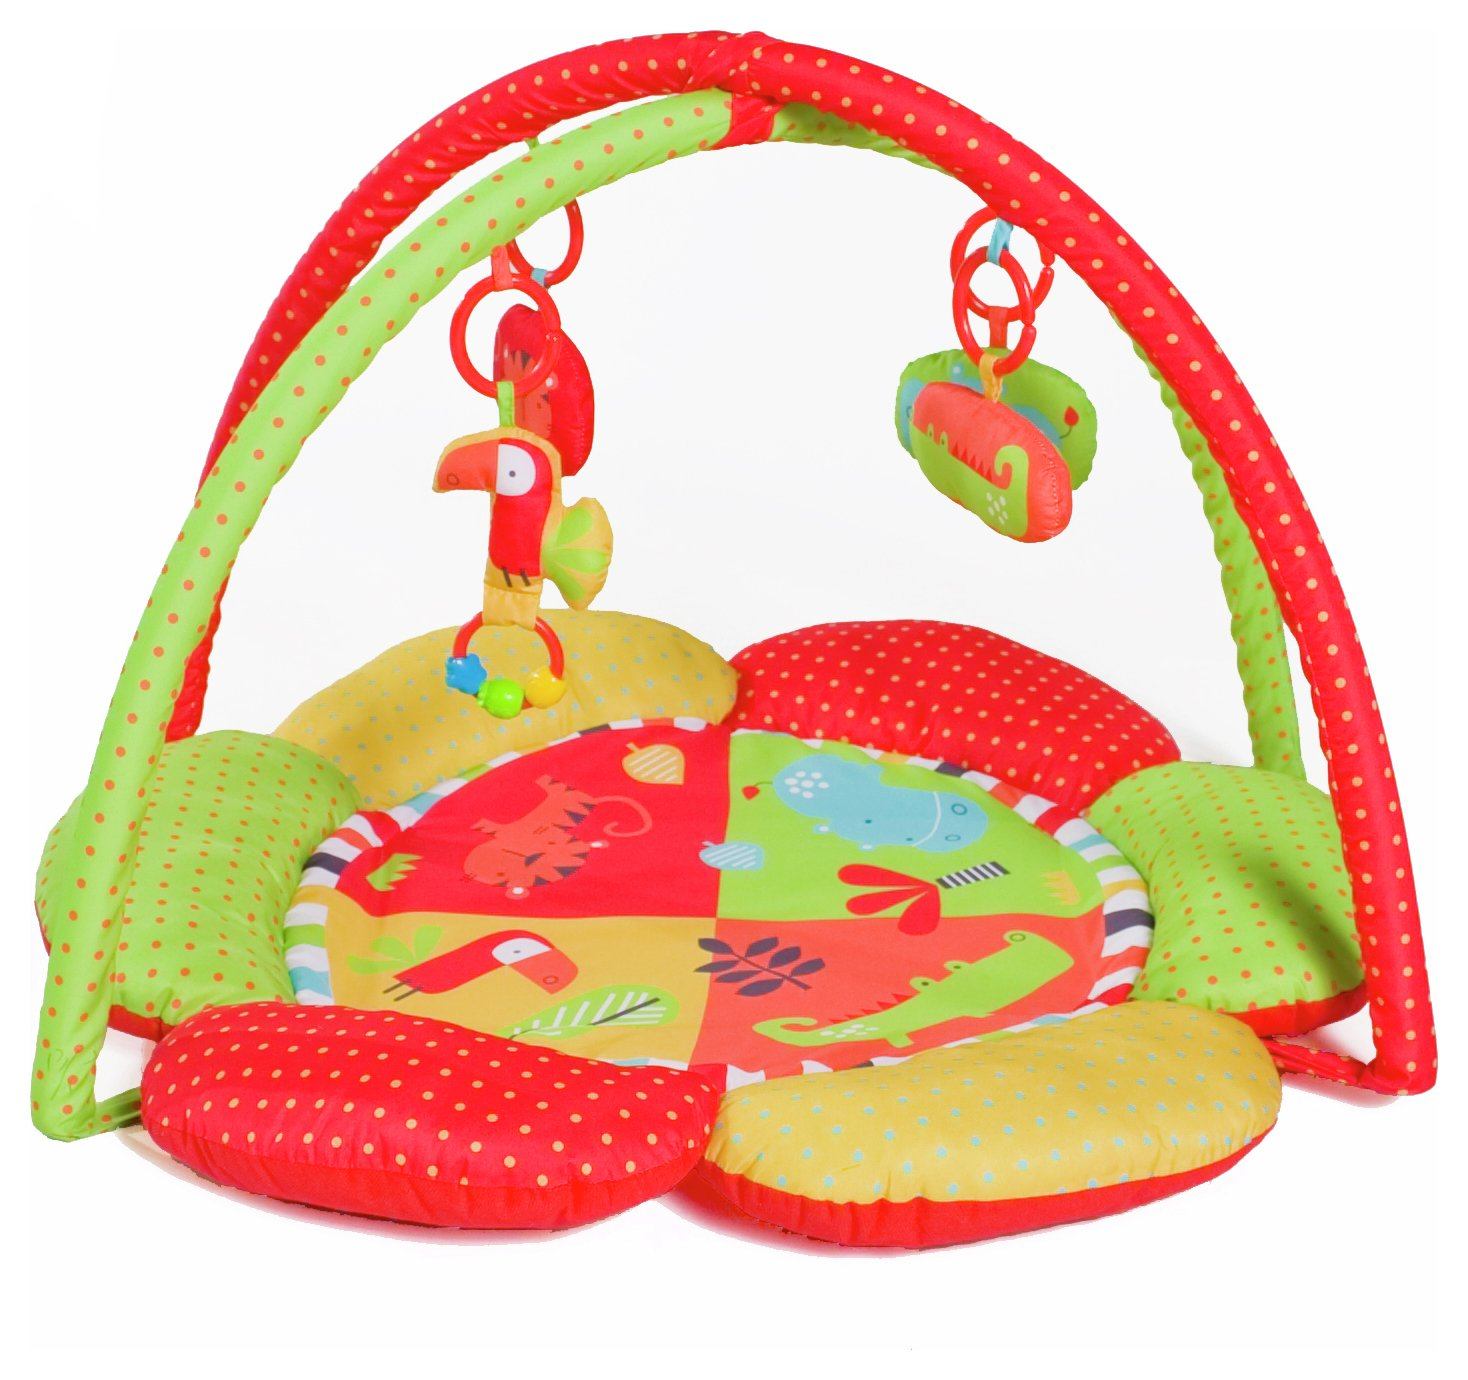 Red Kite Safari Petal Play Gym